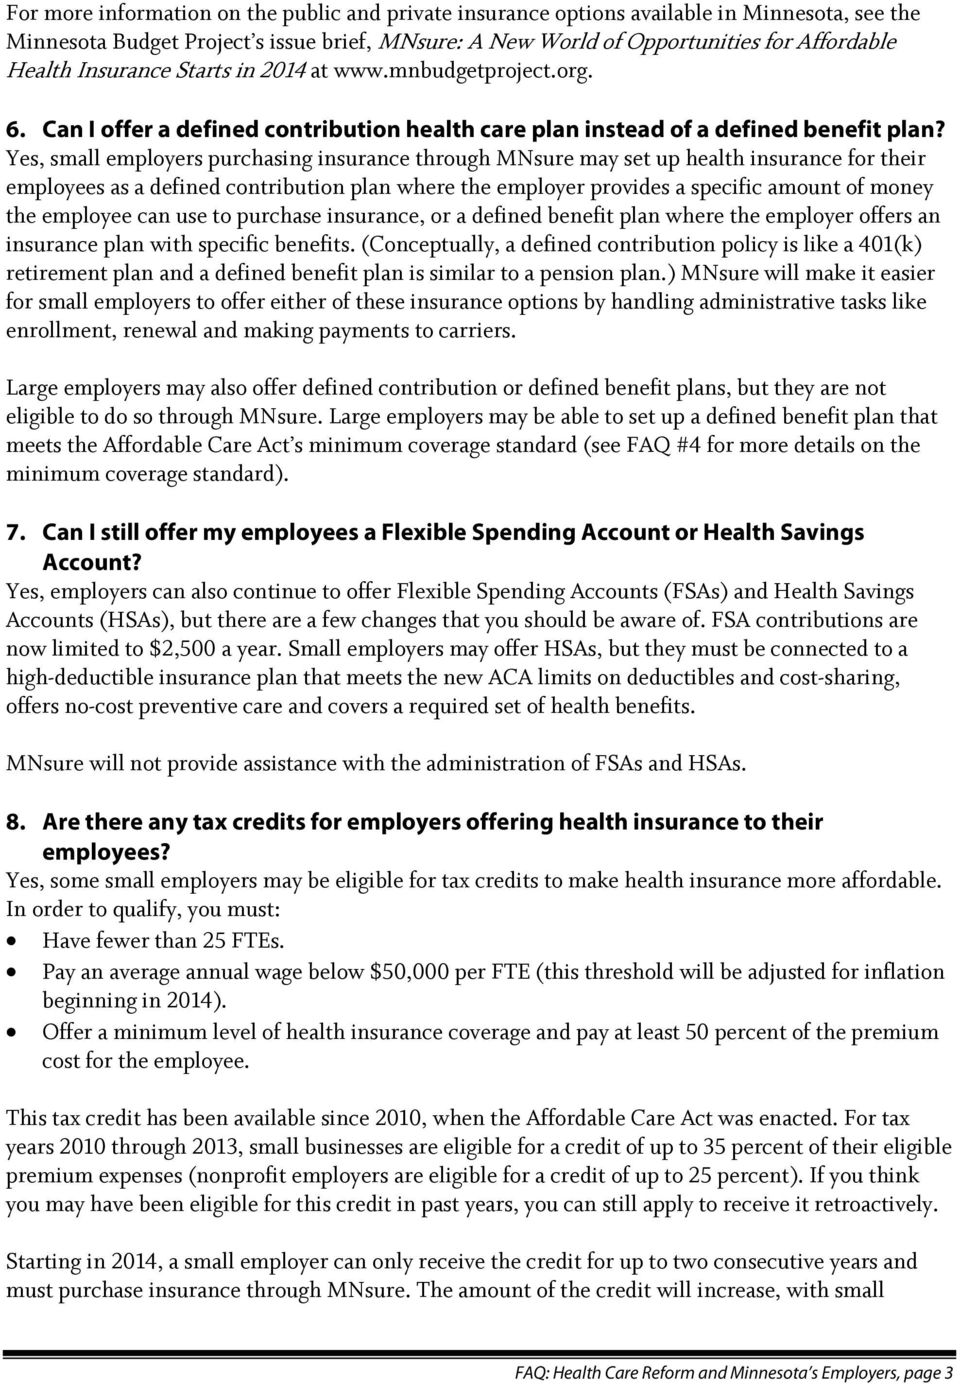 Yes, small employers purchasing insurance through MNsure may set up health insurance for their employees as a defined contribution plan where the employer provides a specific amount of money the